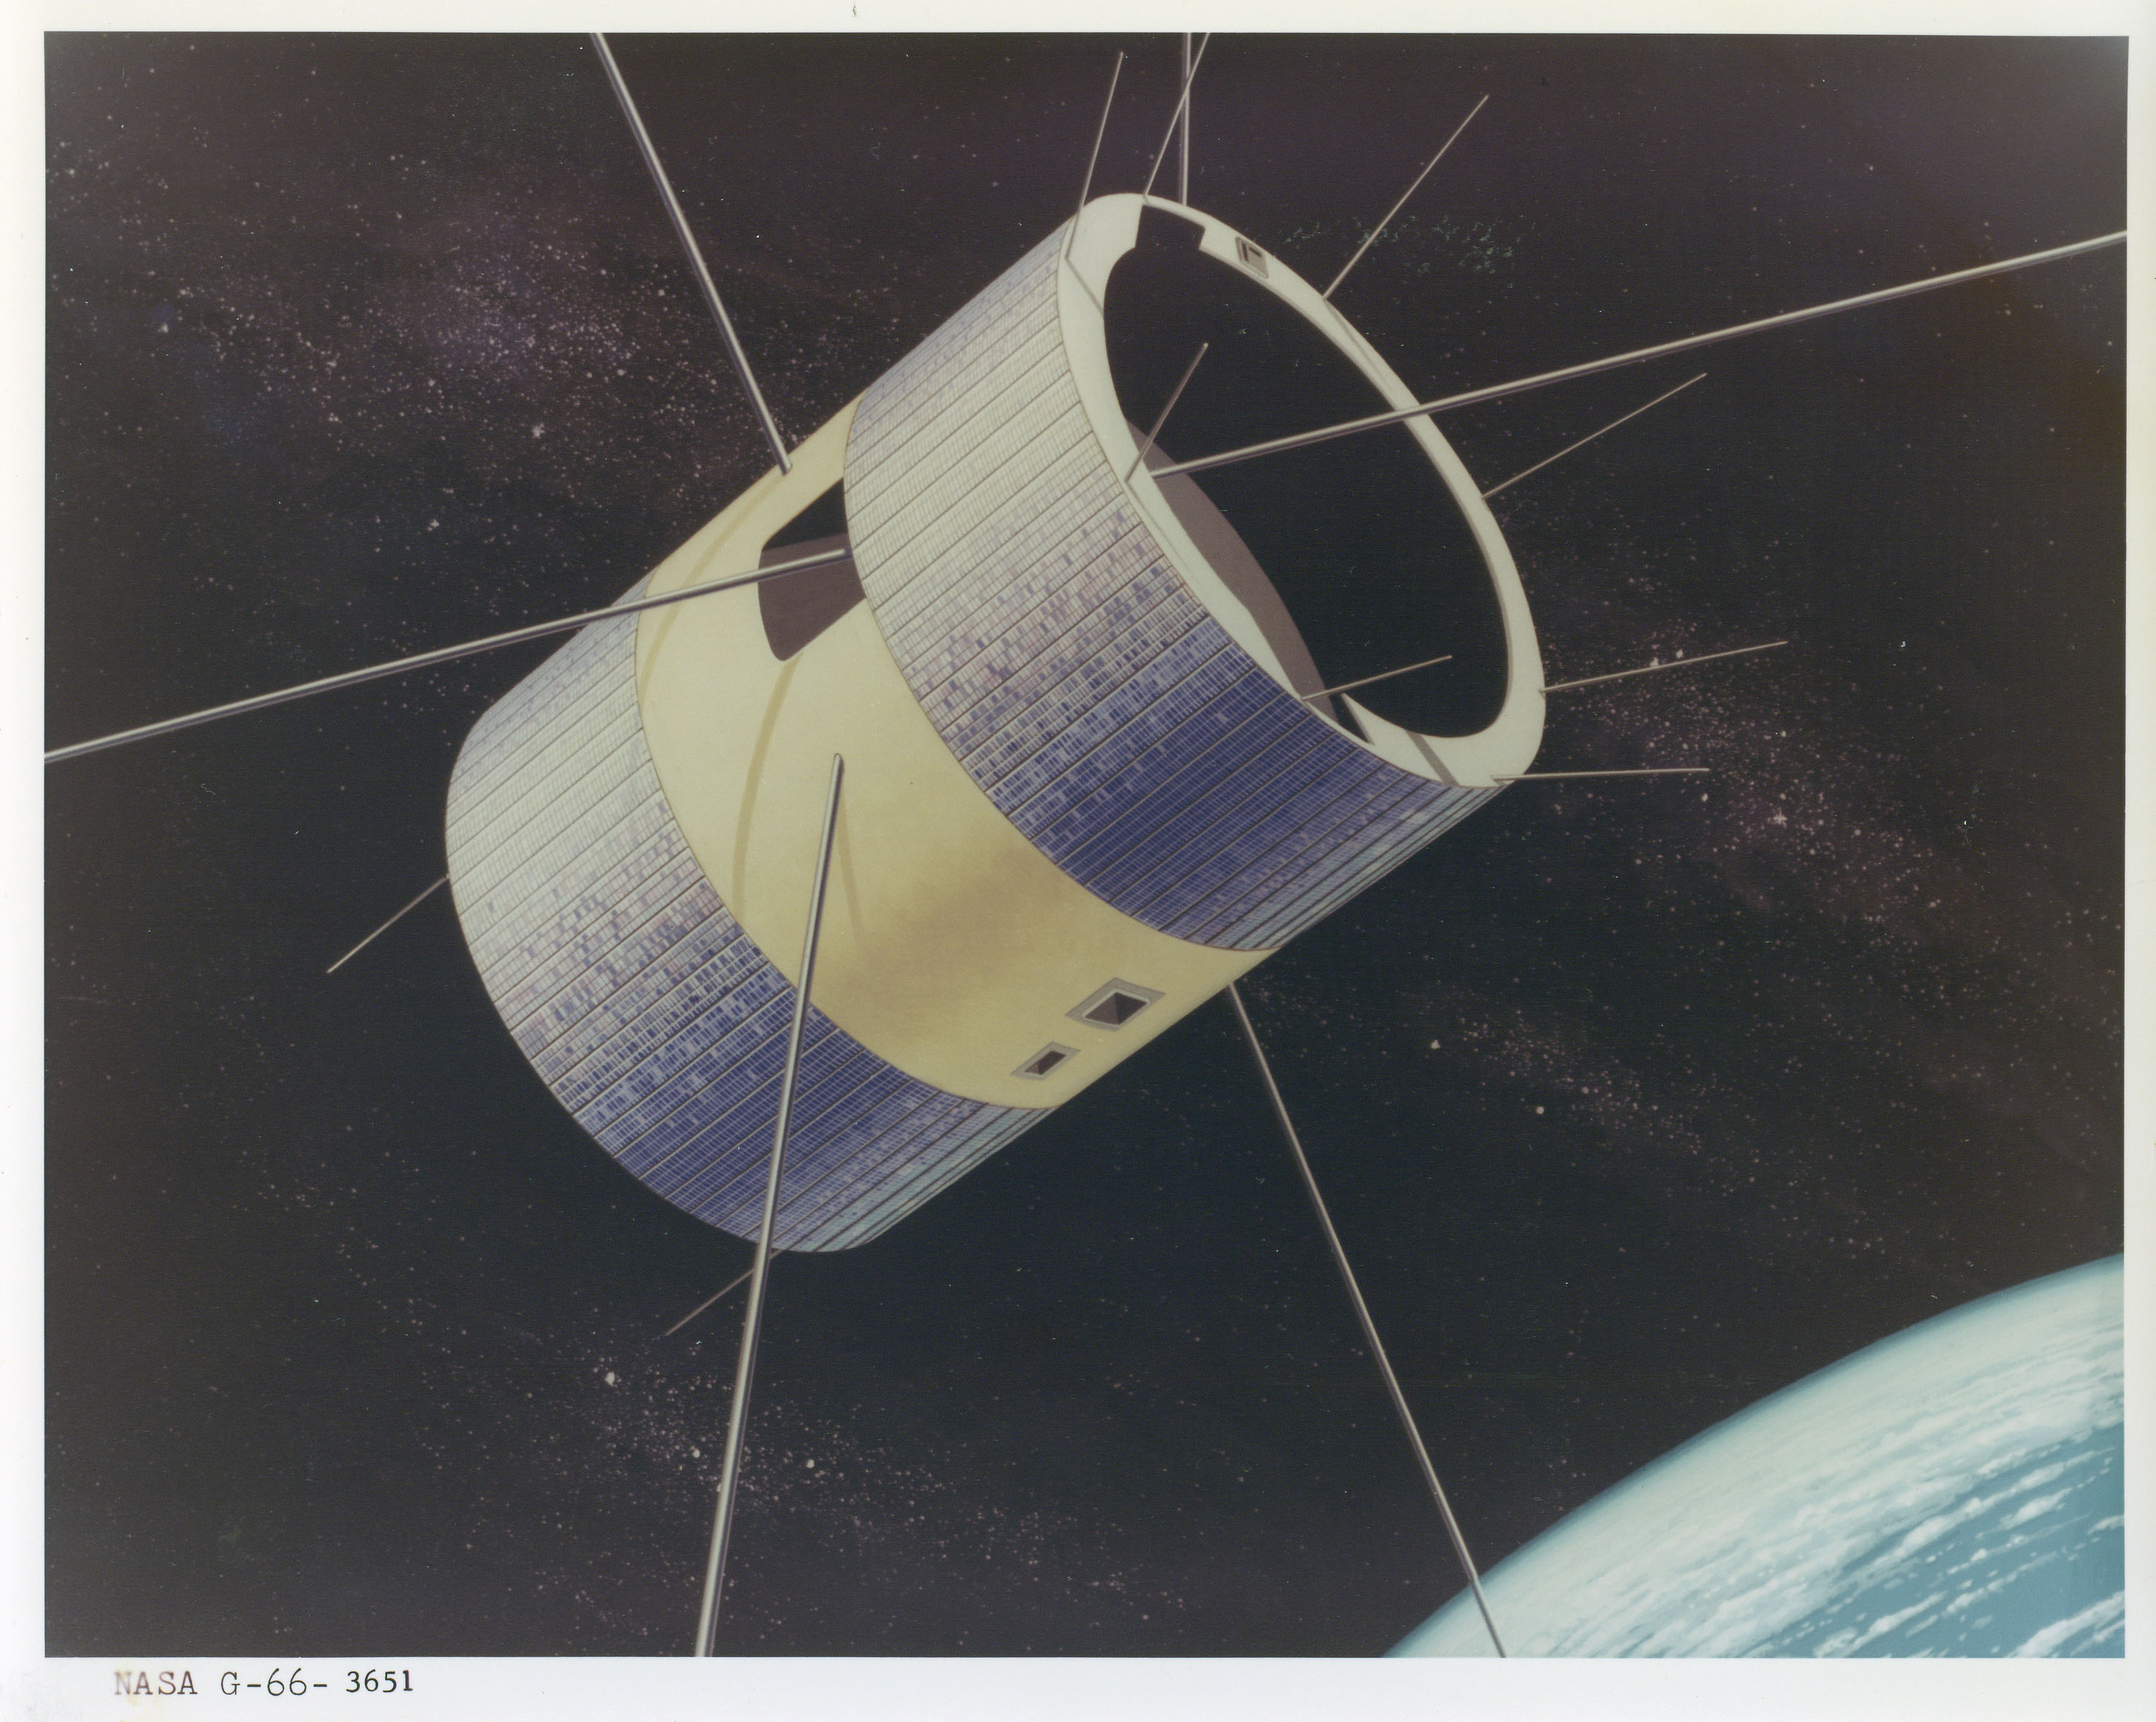 An artist rendering of the ATS-1 spacecraft. Credit: NASA